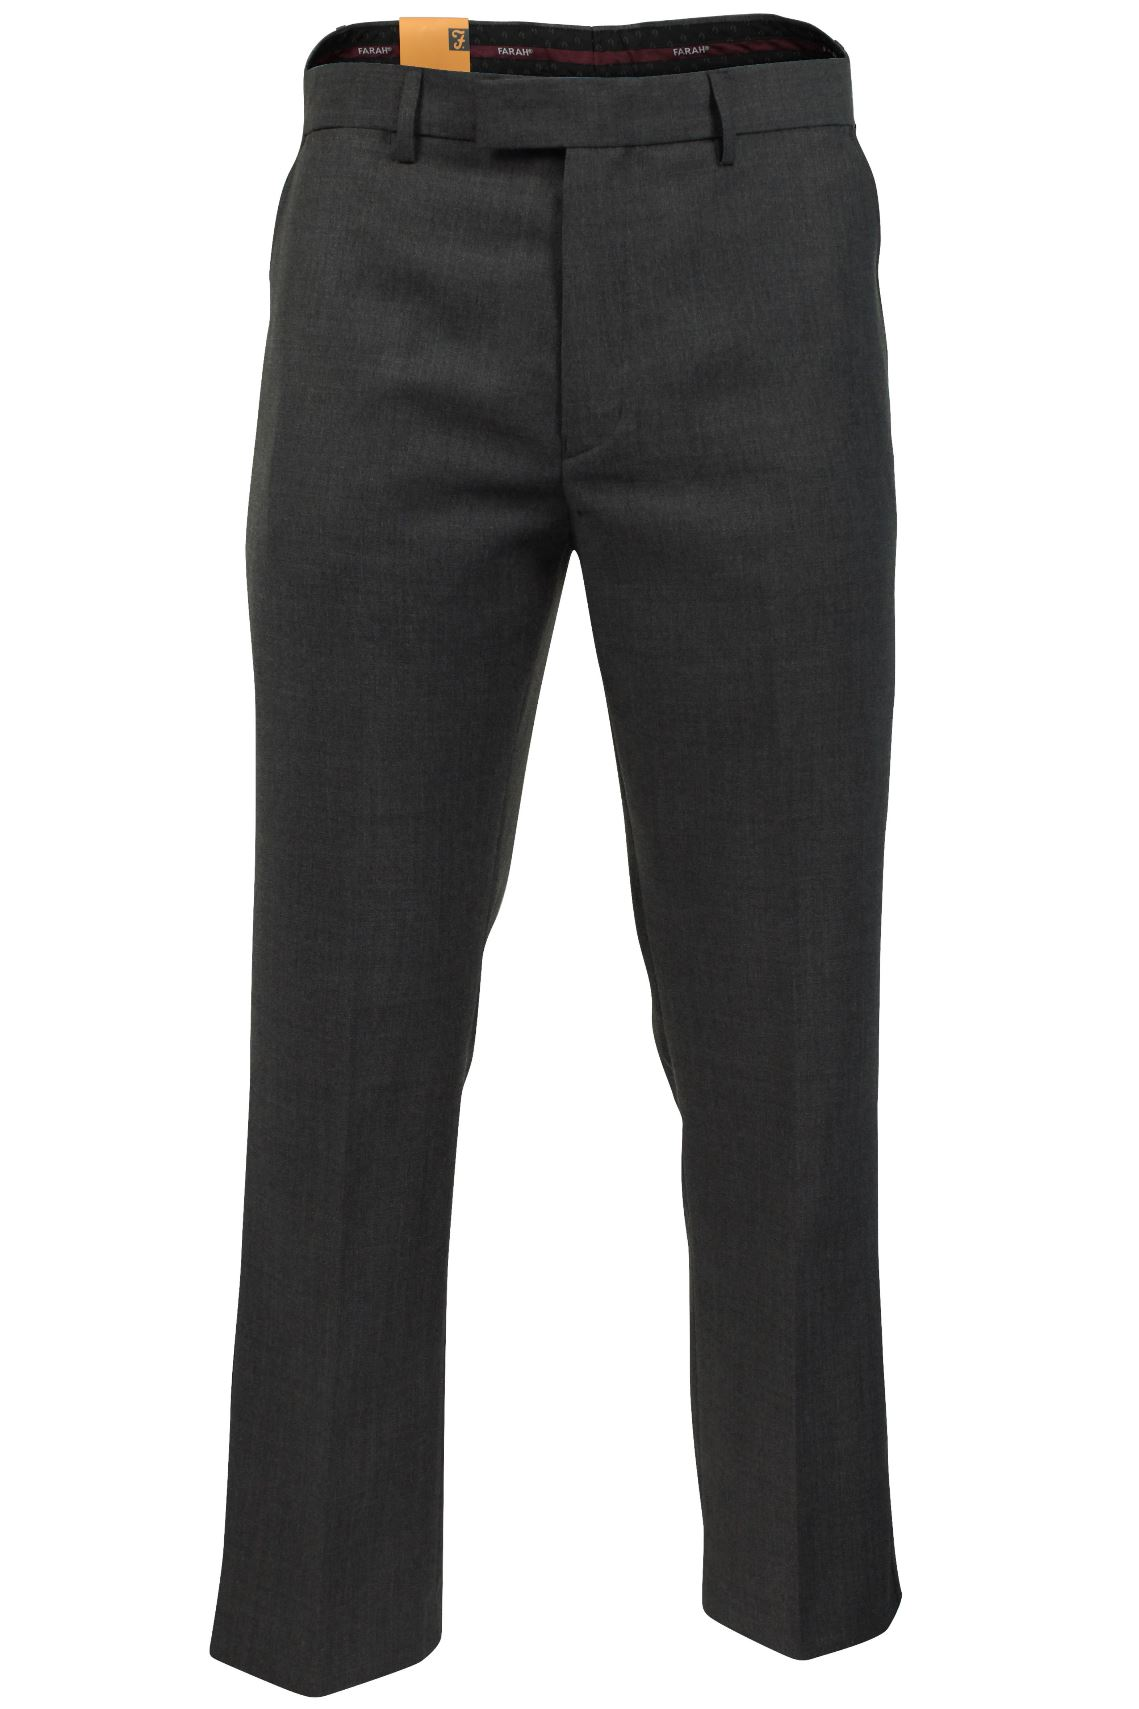 Affordable Cheap Price Mens Trousers Farah Where To Buy Cheapest Online bTied0yYE